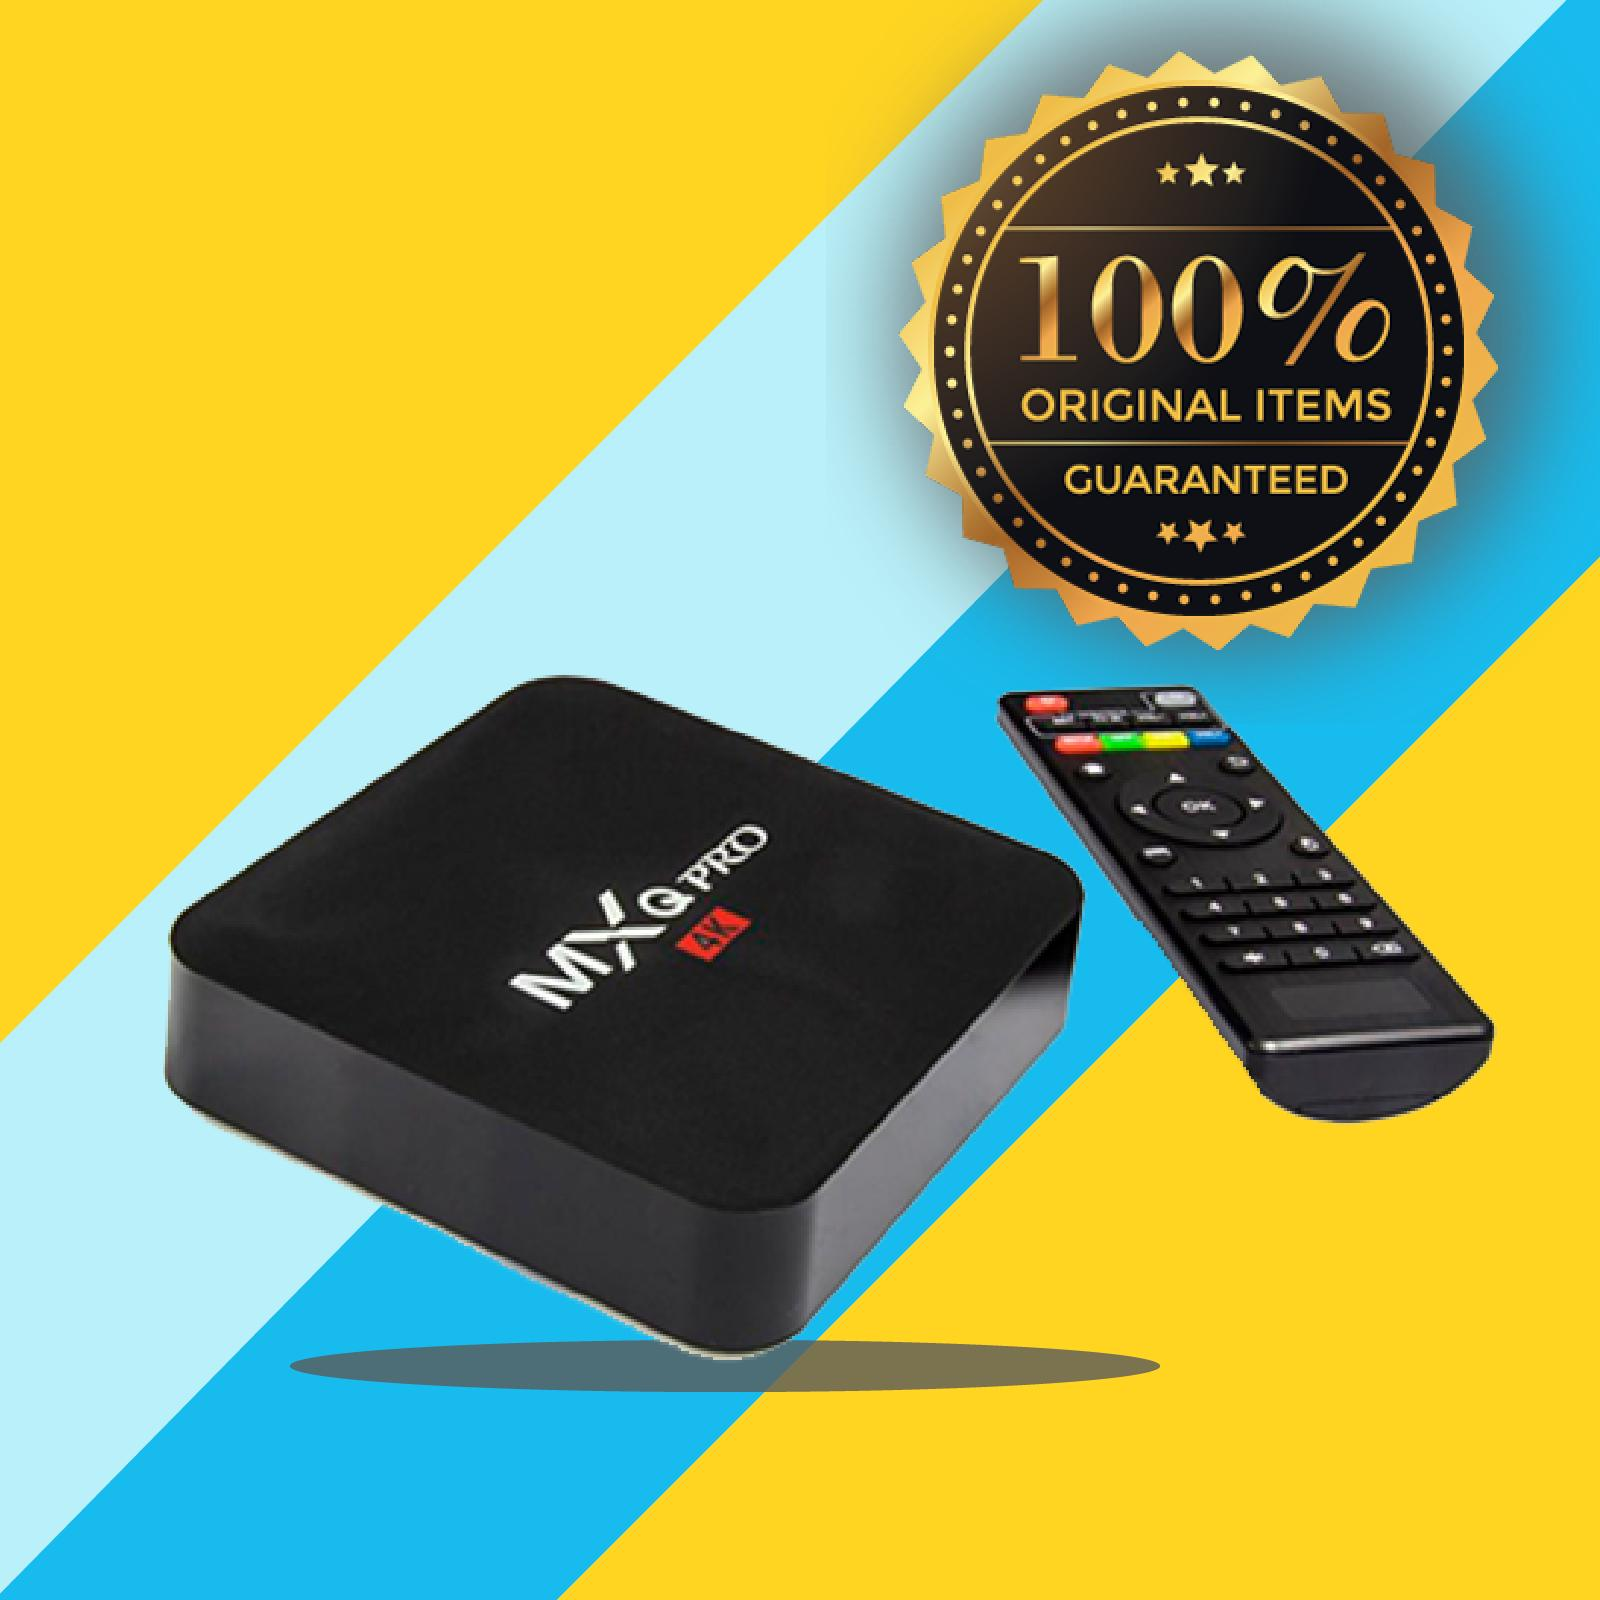 【Flash Deal】 MXQ PRO 4K Android Smart TV Box - Black - Best Price